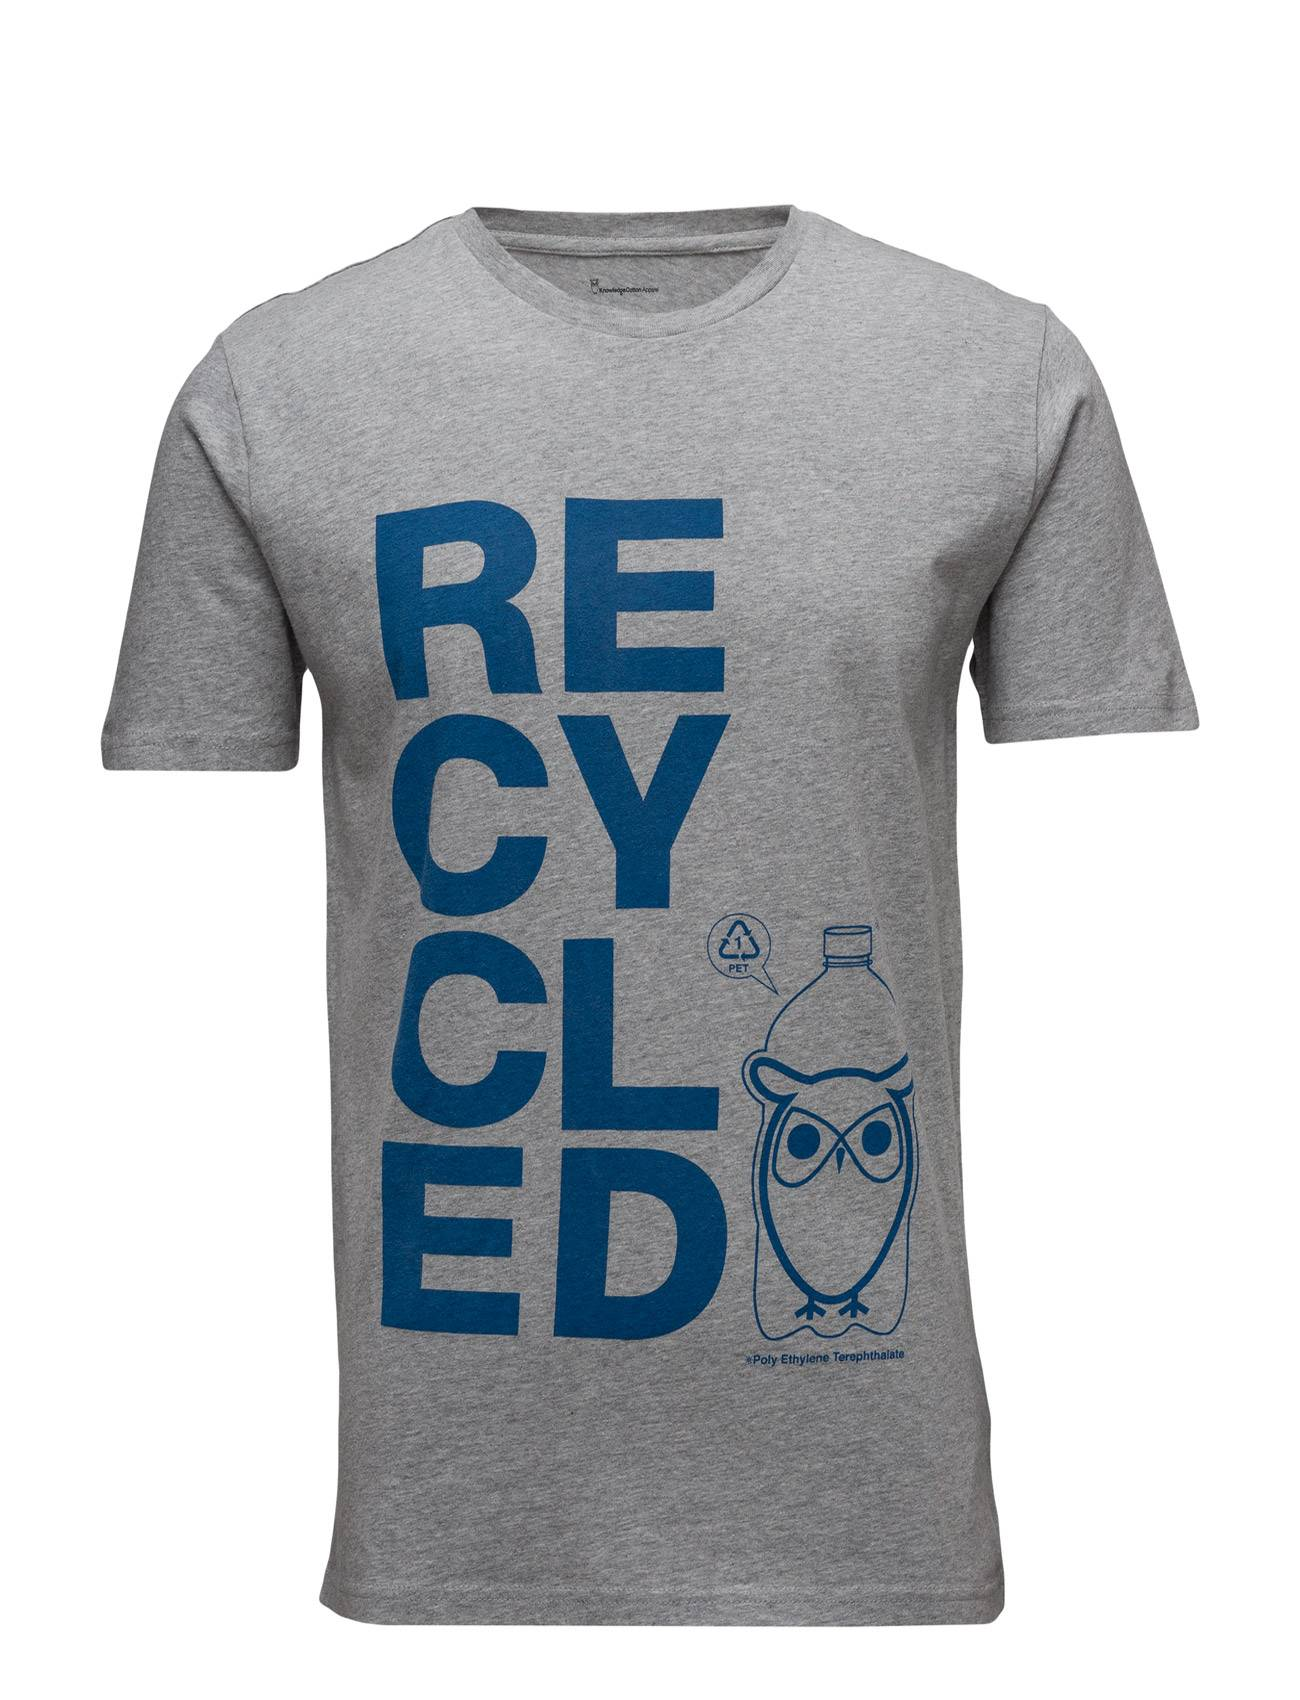 Knowledge Cotton Apparel T-Shirt W/Recycle Print - Gots